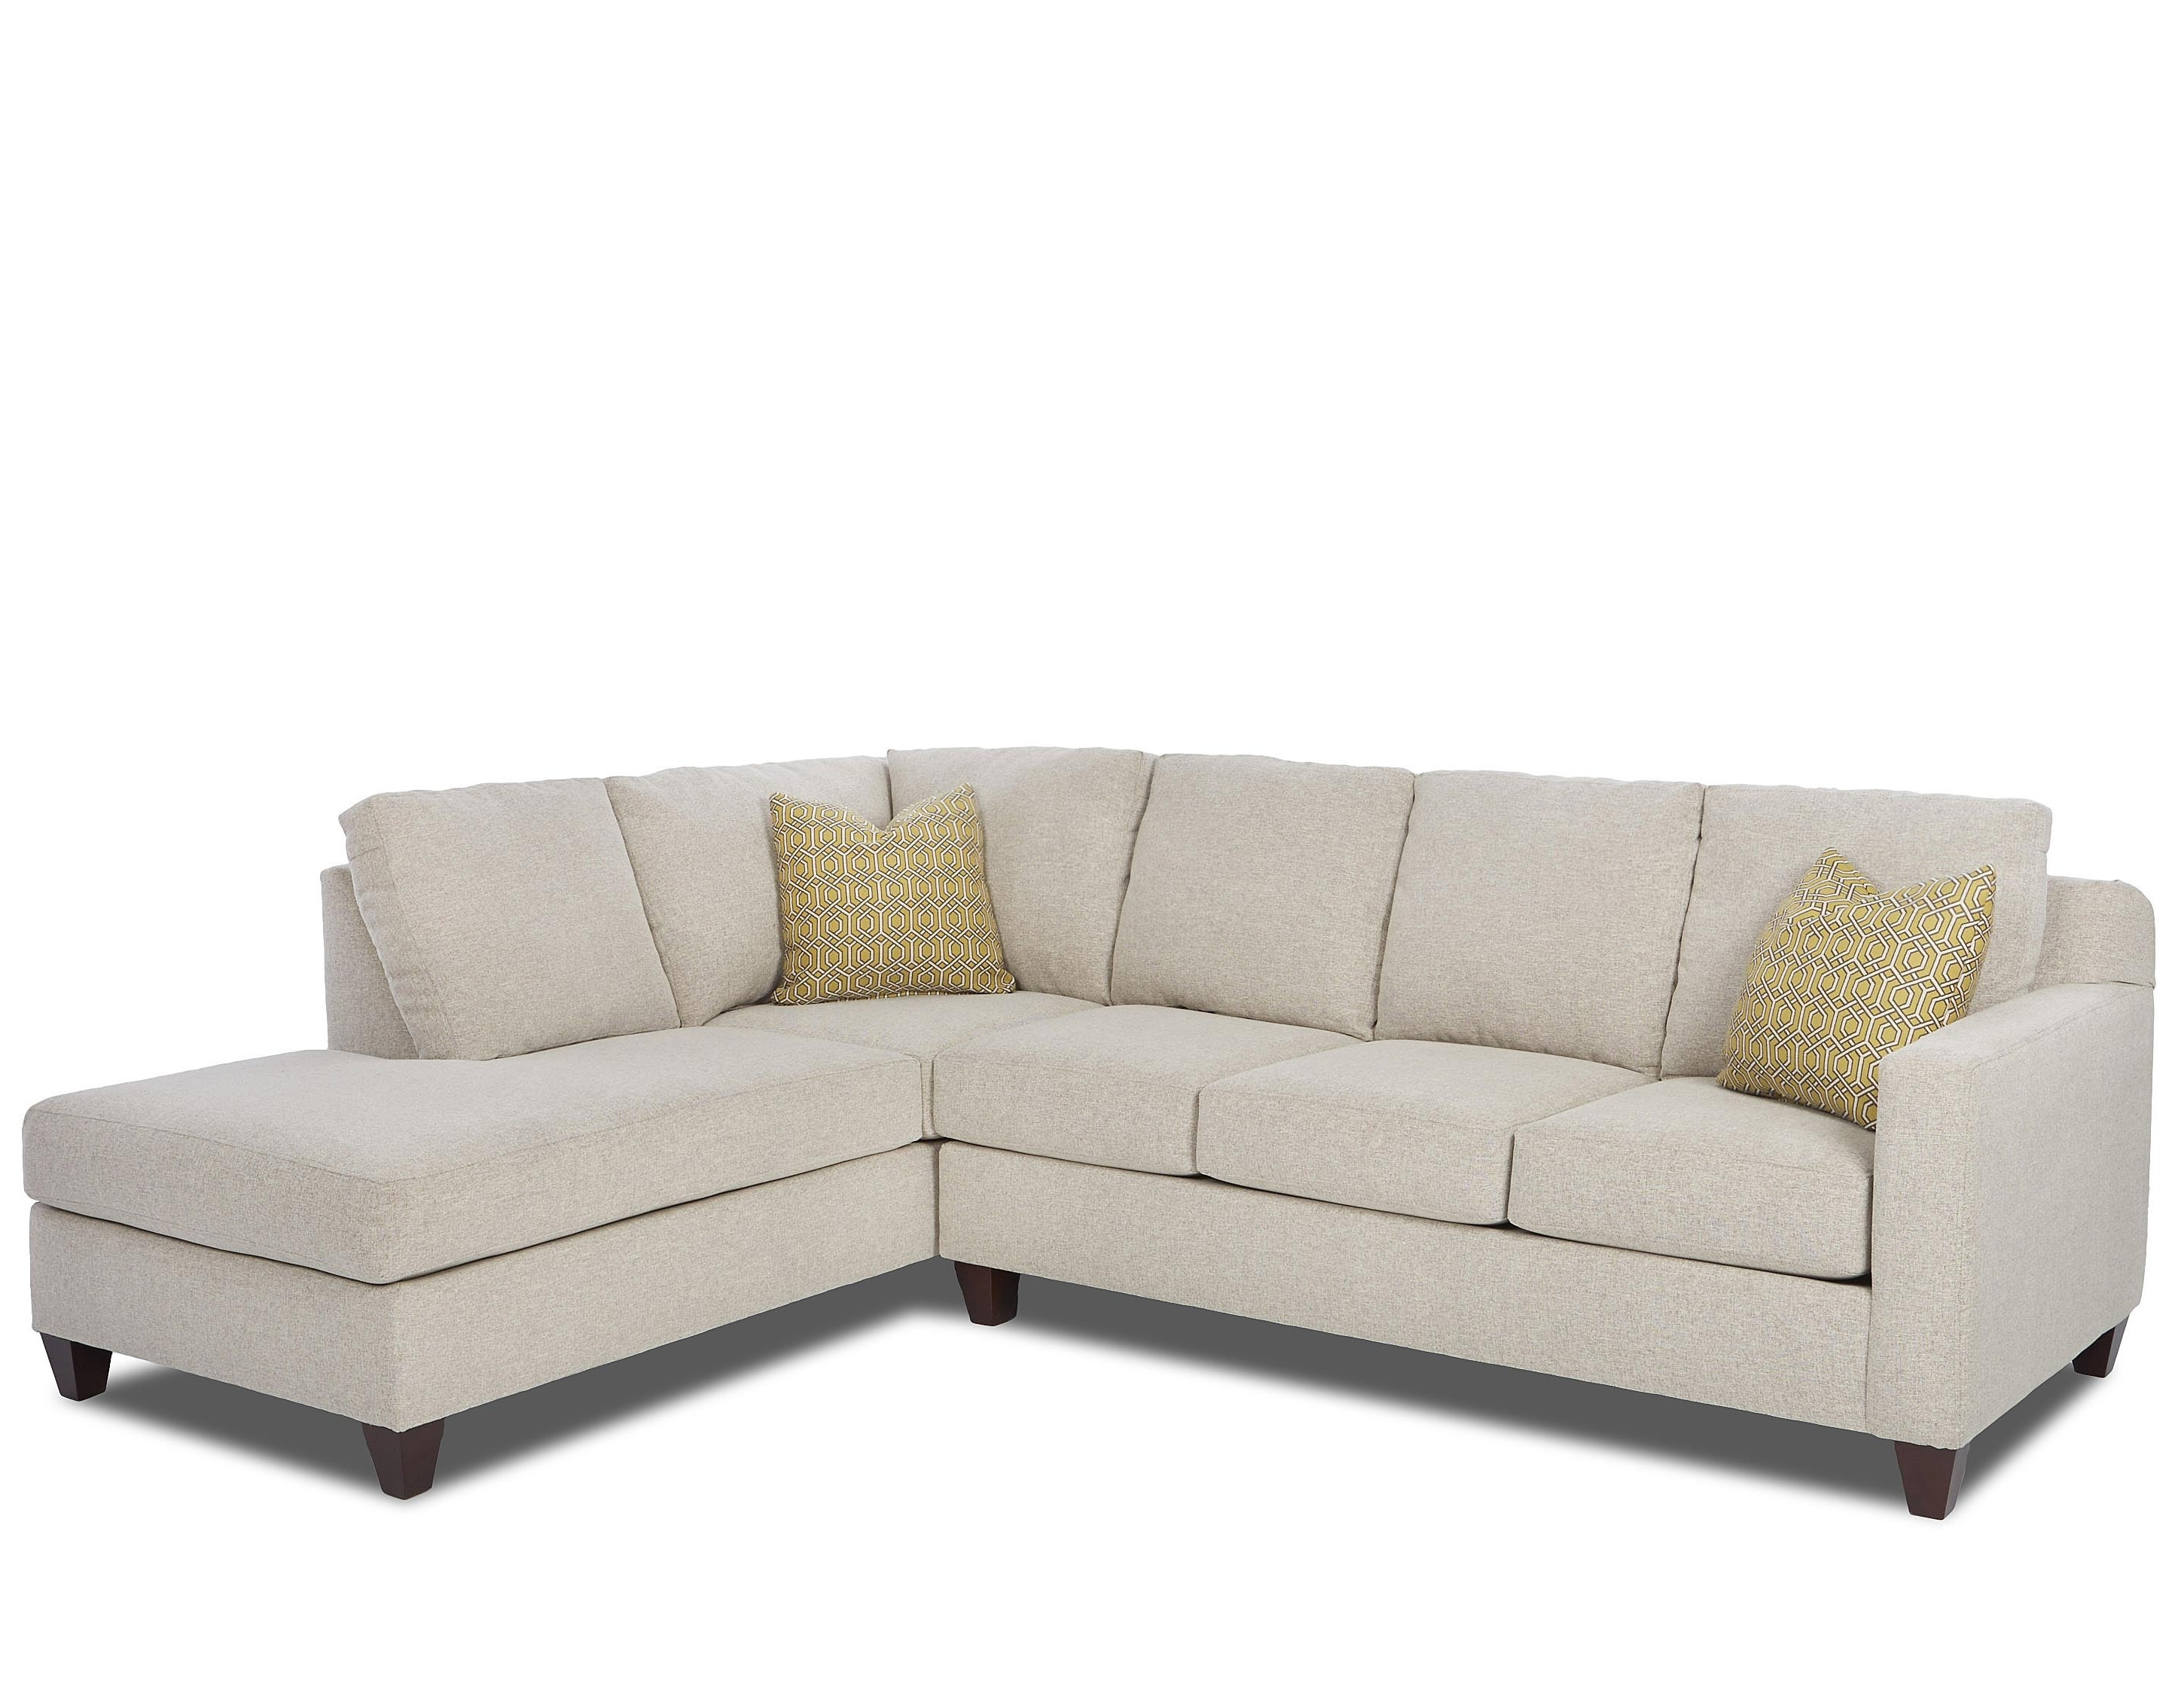 Right Arm Chaises Intended For Well Liked Contemporary 2 Piece Sectional With Right Arm Facing Sofa Chaise (View 11 of 15)